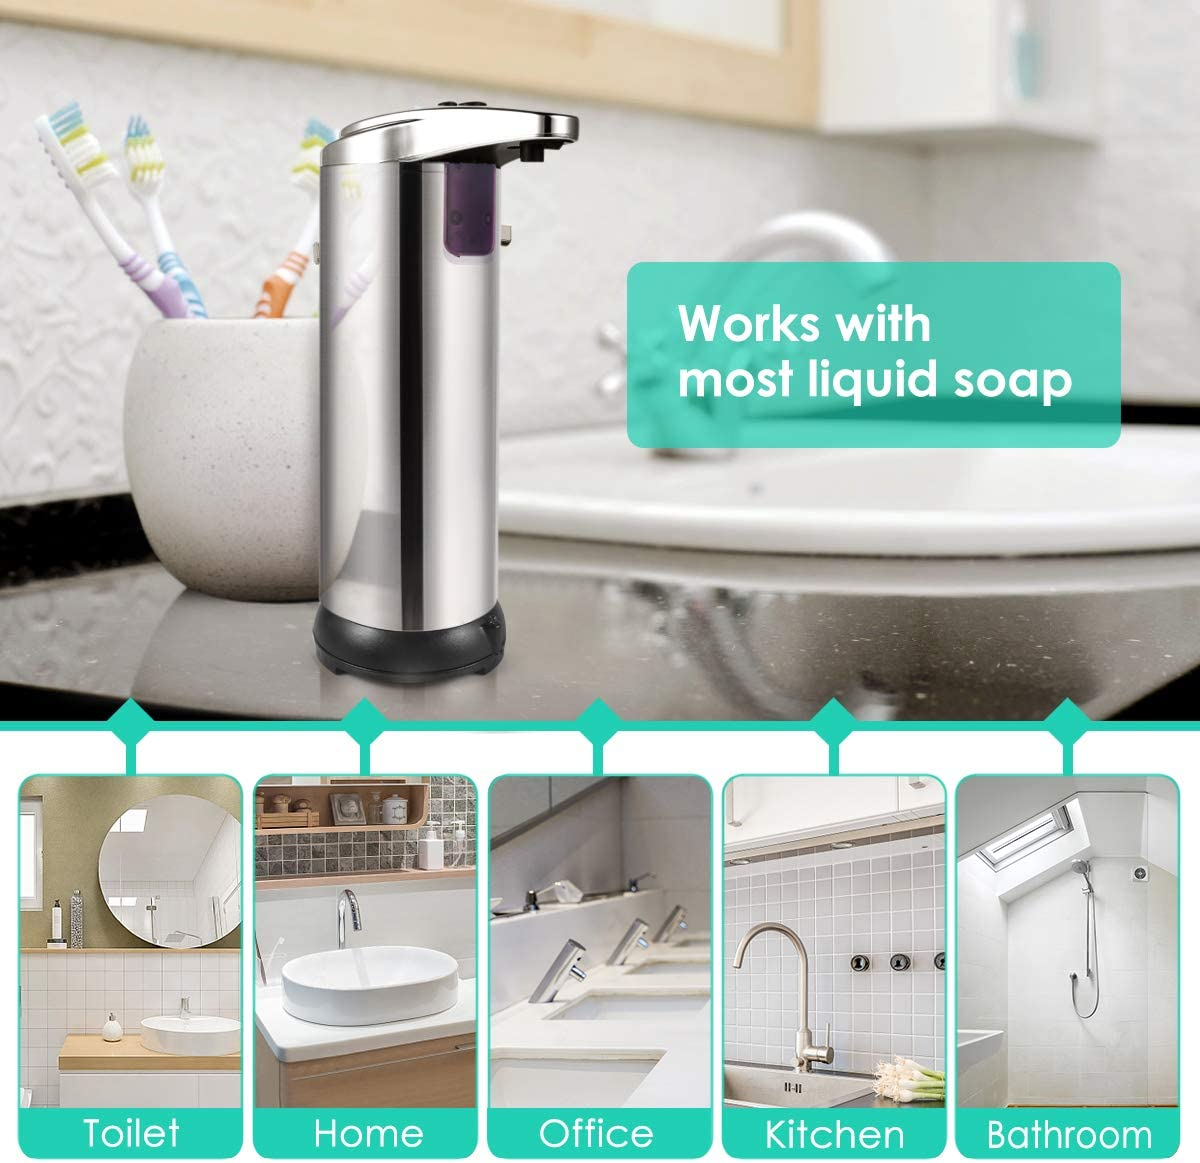 HAYI Automatic Soap Dispensers Infrared Motion Sensor Touchless with 2 Levels Dispensing Volume 300ml//10.2oz Foam Soap Dispenser Waterproof Base for Kitchen//Bathroom//Hotel//Hospital